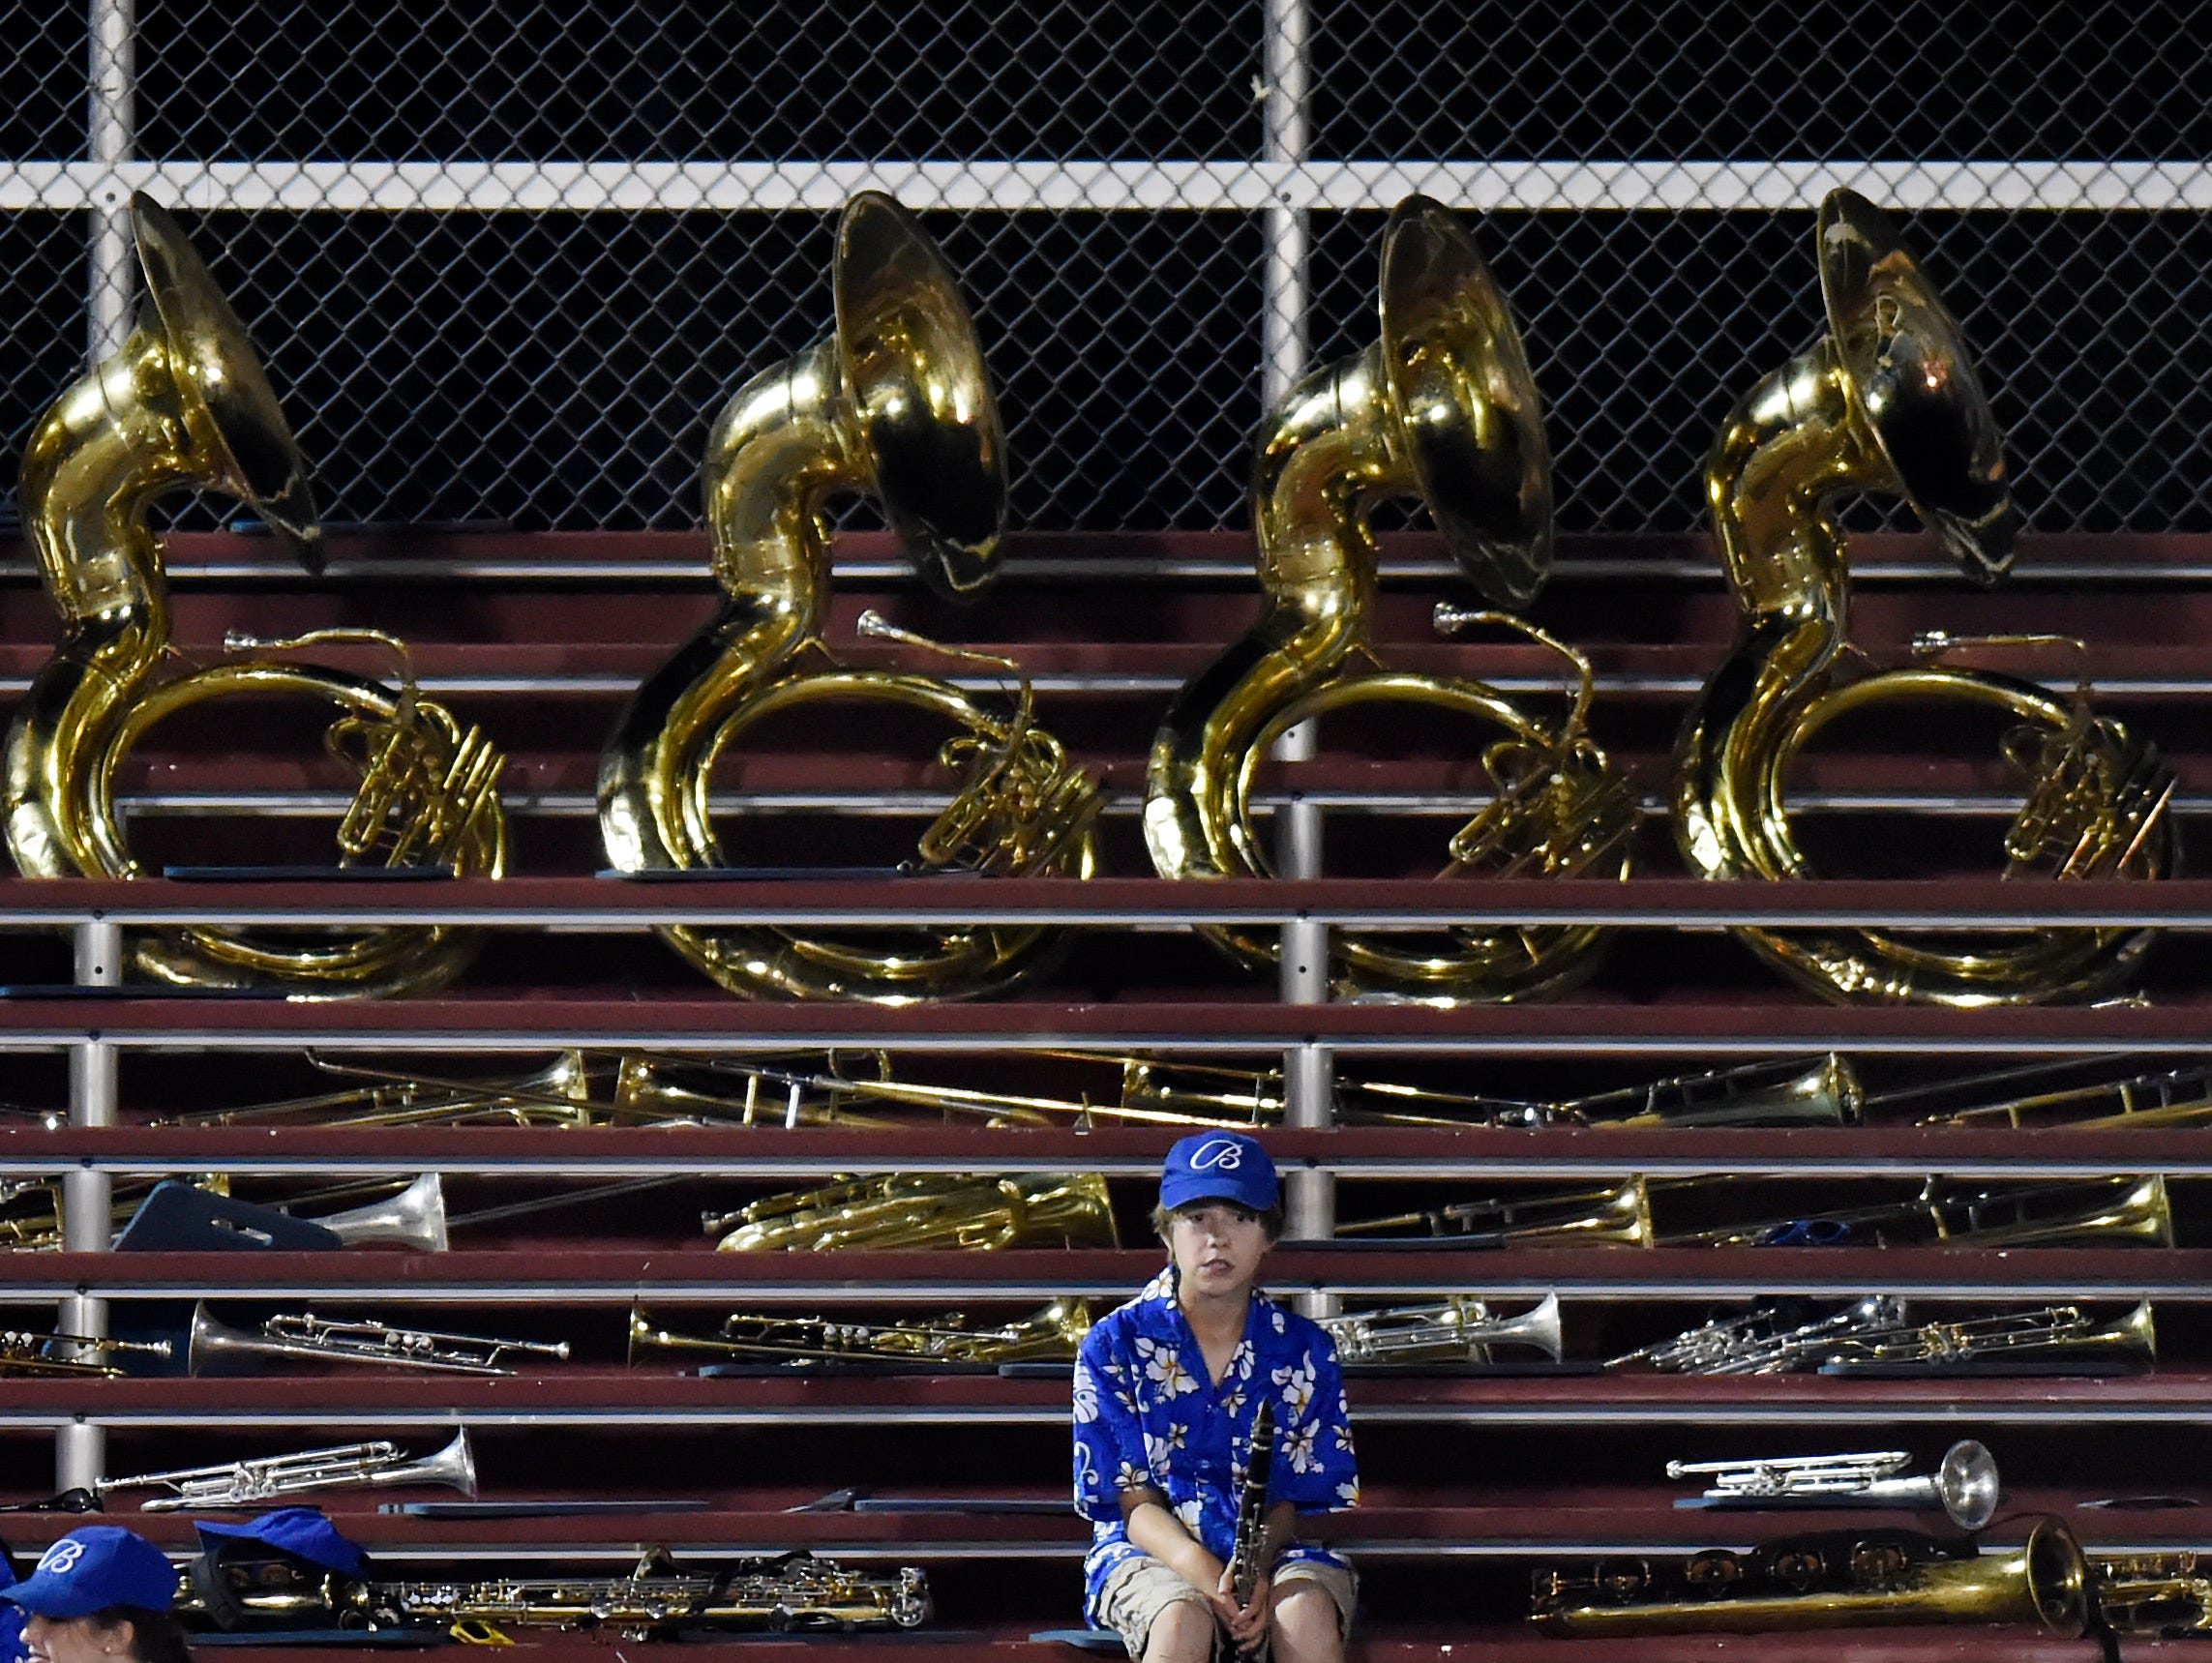 A Brentwood High School band member sits in the stands after Franklin defeated Brentwood 41-7 on Friday, Sept. 9, 2016, in Franklin. Franklin won 41-7.